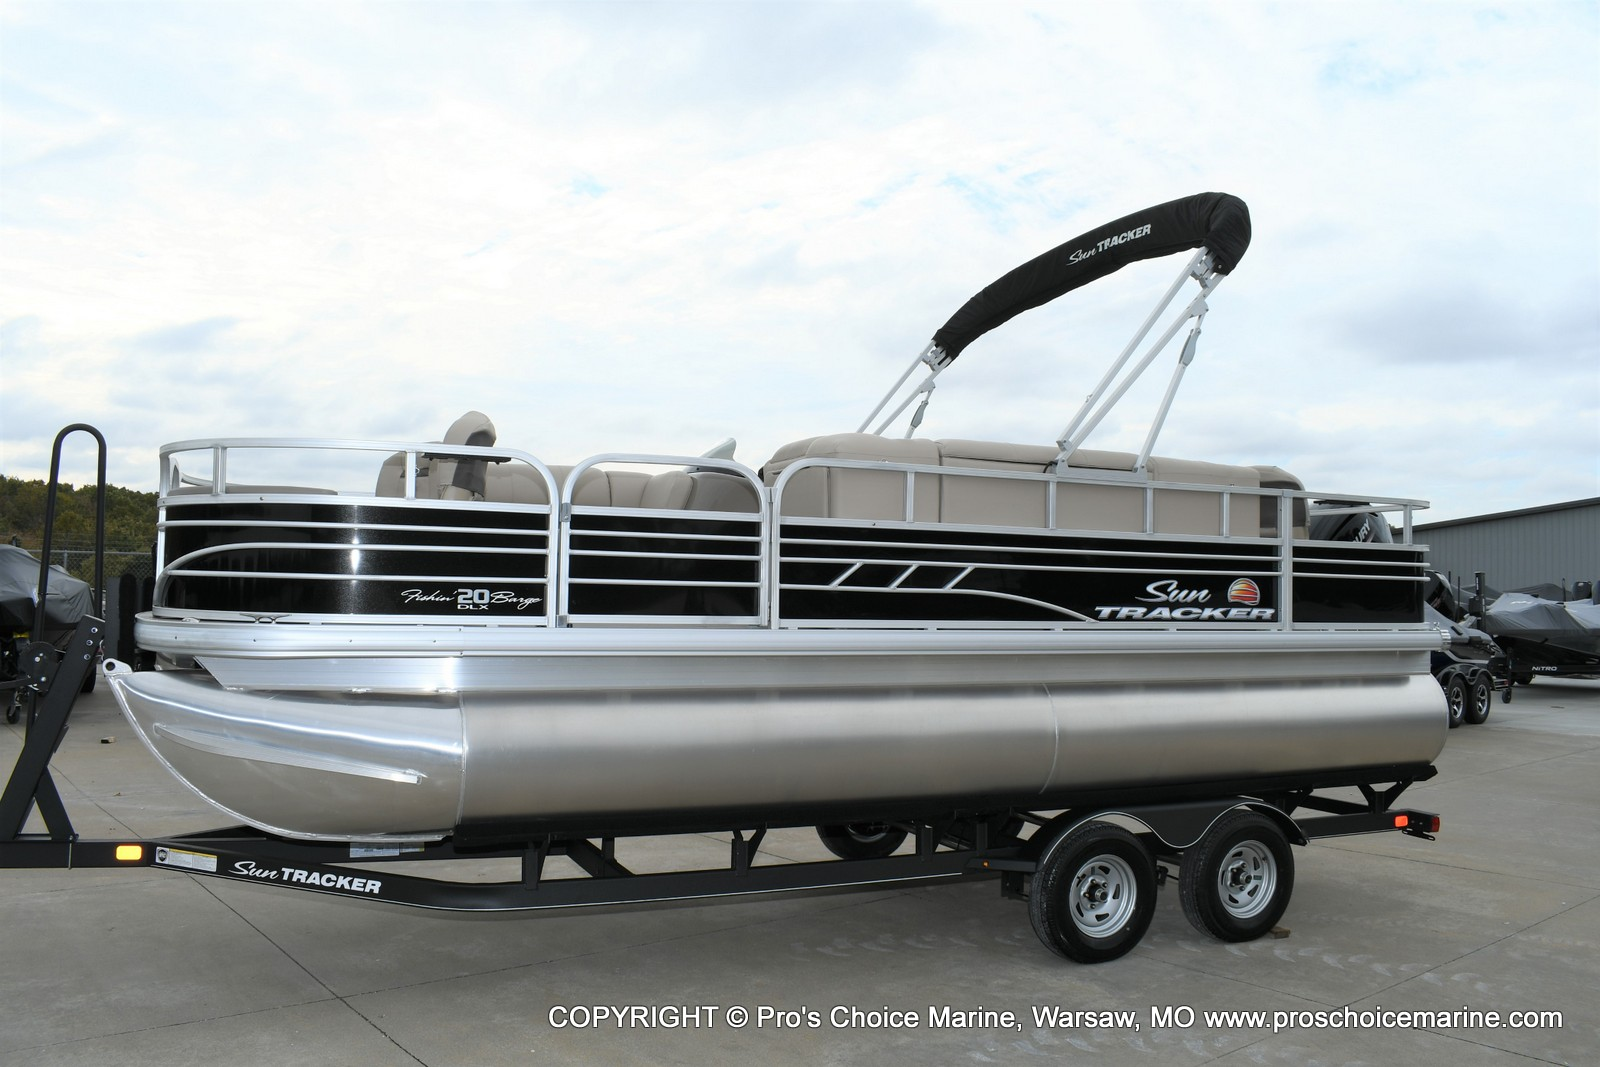 2020 Sun Tracker boat for sale, model of the boat is Fishin' Barge 20 DLX & Image # 29 of 50